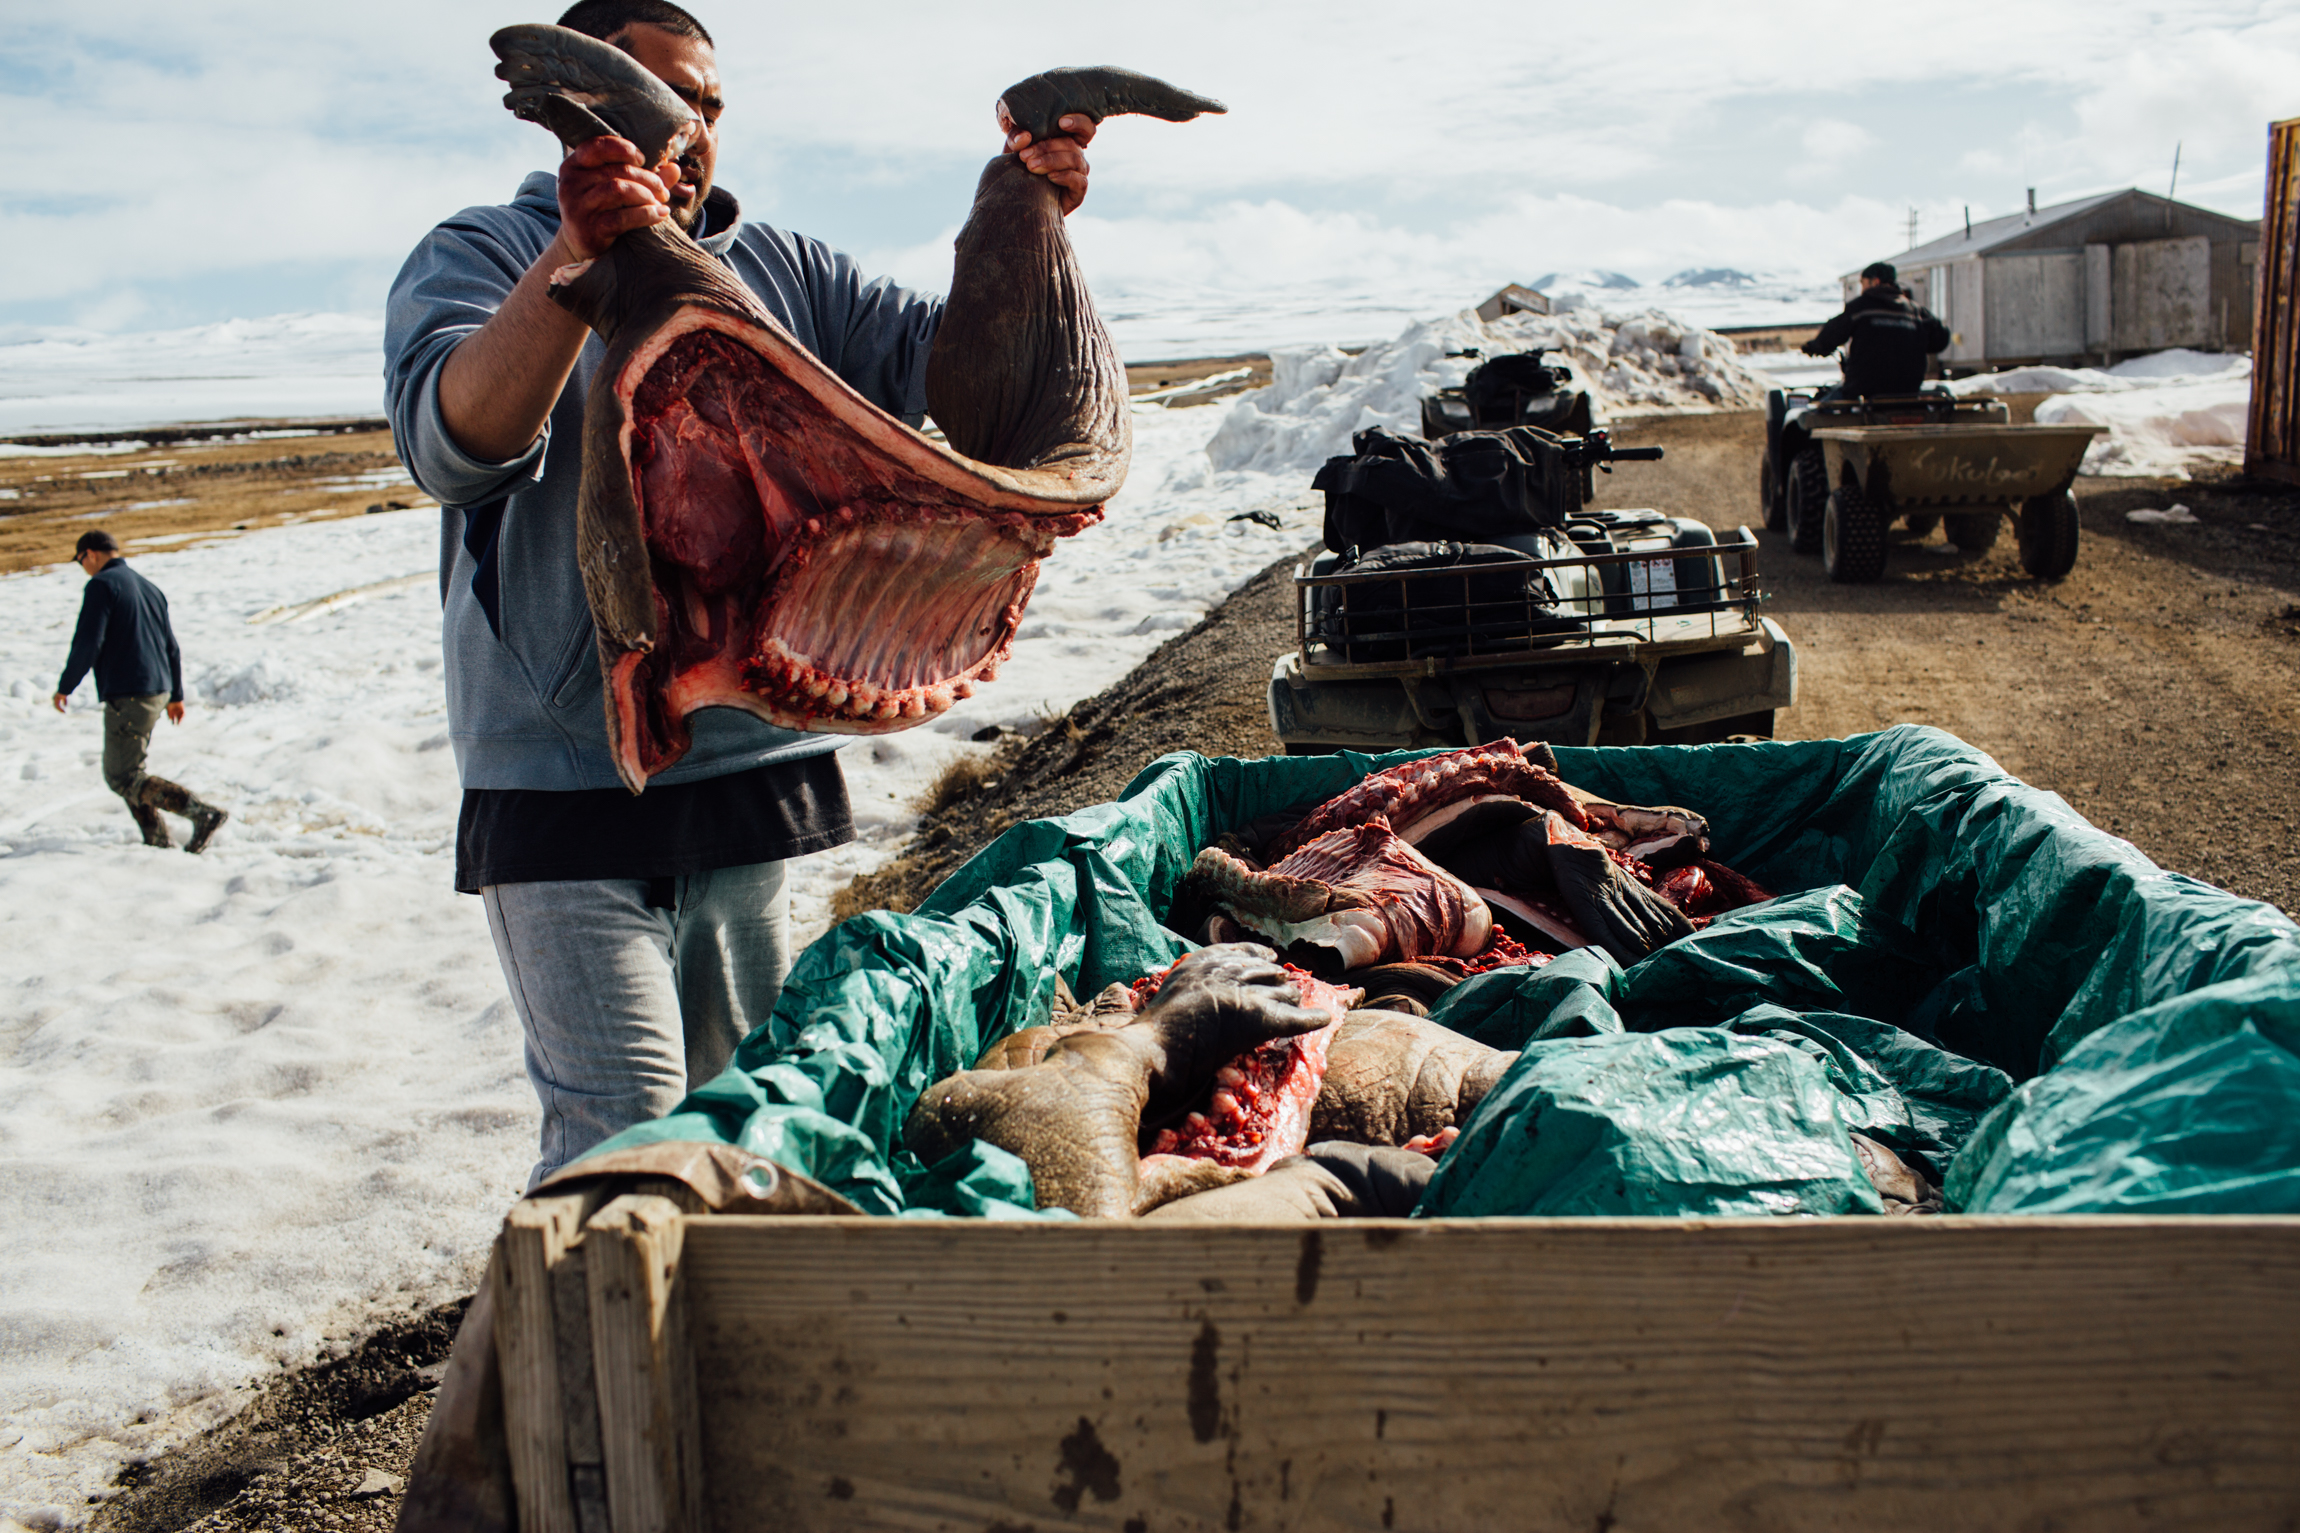 After butchering juvenile walrus, hunters load the meat into an ATV trailer to hang from drying racks outside their homes. Savoonga, St. Lawrence Island, Alaska.